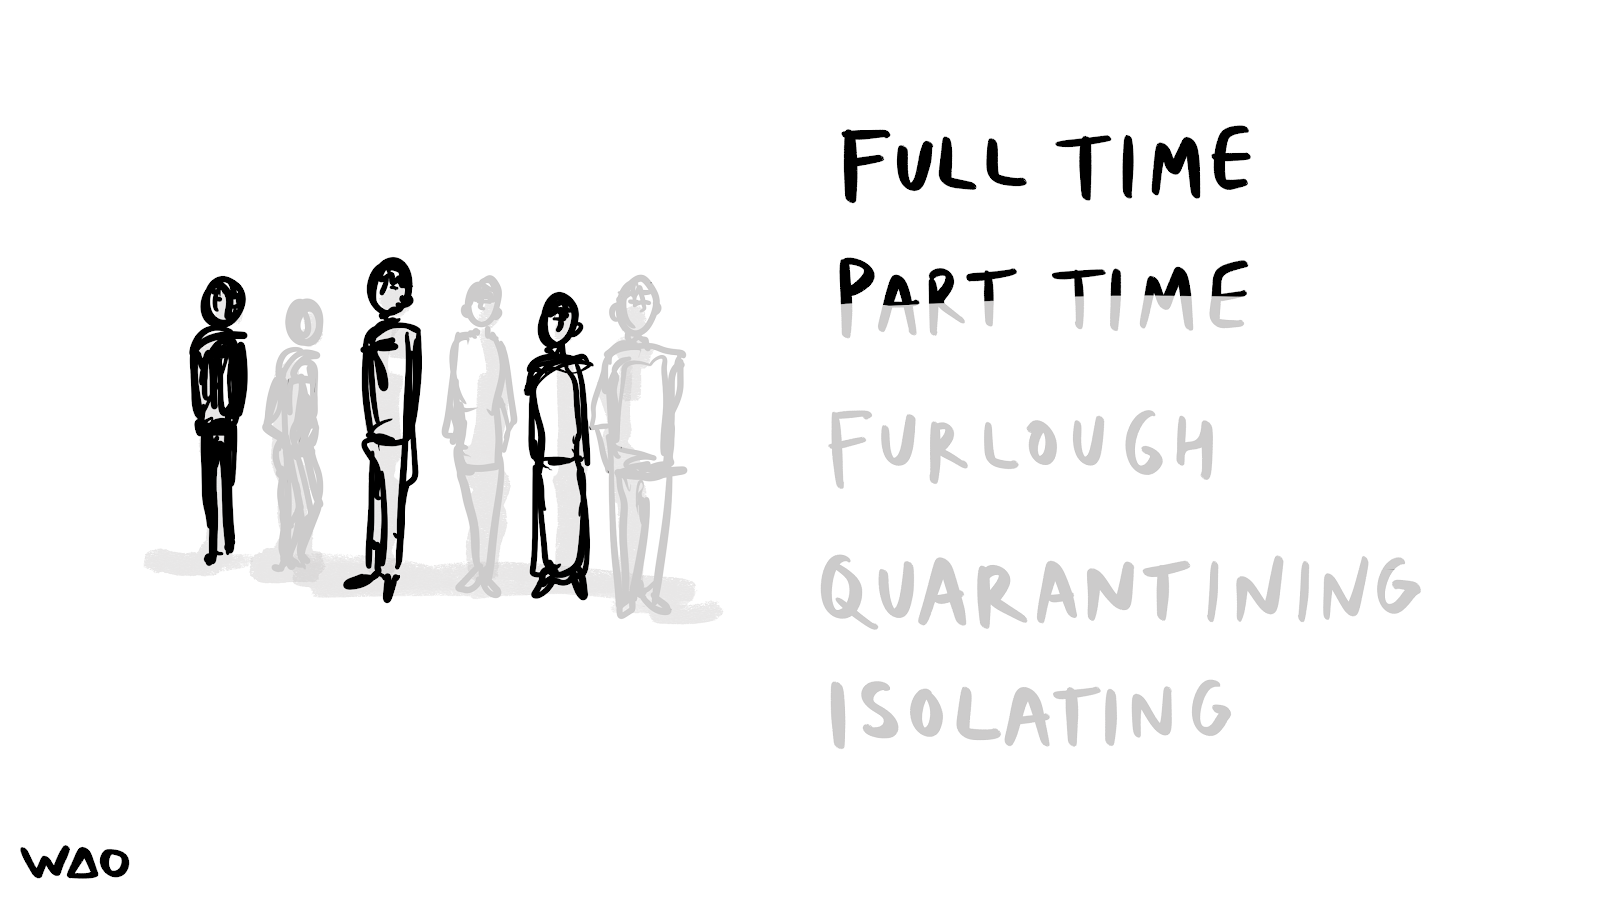 Some people in bold and others faded. List withwords 'Full time', 'Part time', 'Furlough', 'Quarantining' and 'Isolating'.